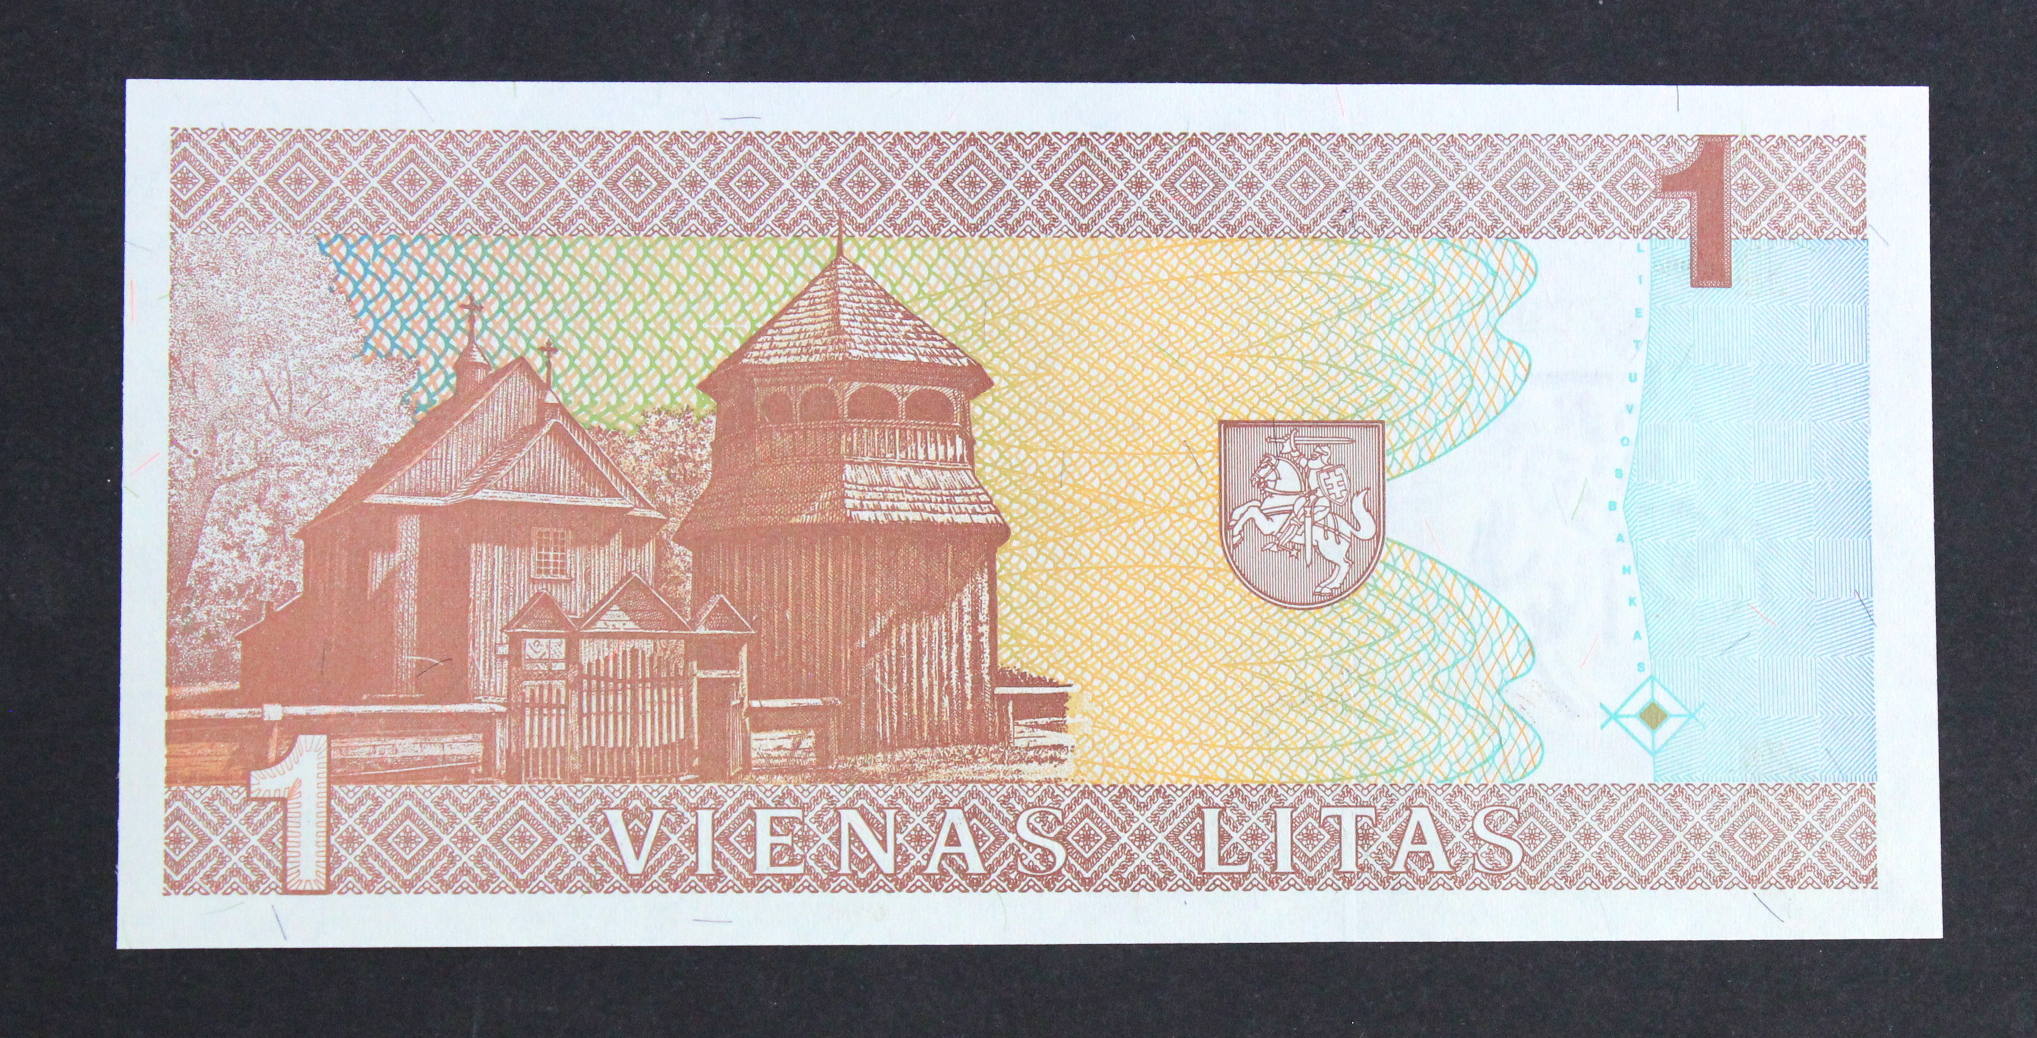 Lithuania 1 Litas dated 1994, exceptionally scarce REPLACEMENT note, serial 1ZZ 0042307 (TBB B164az, - Image 2 of 2